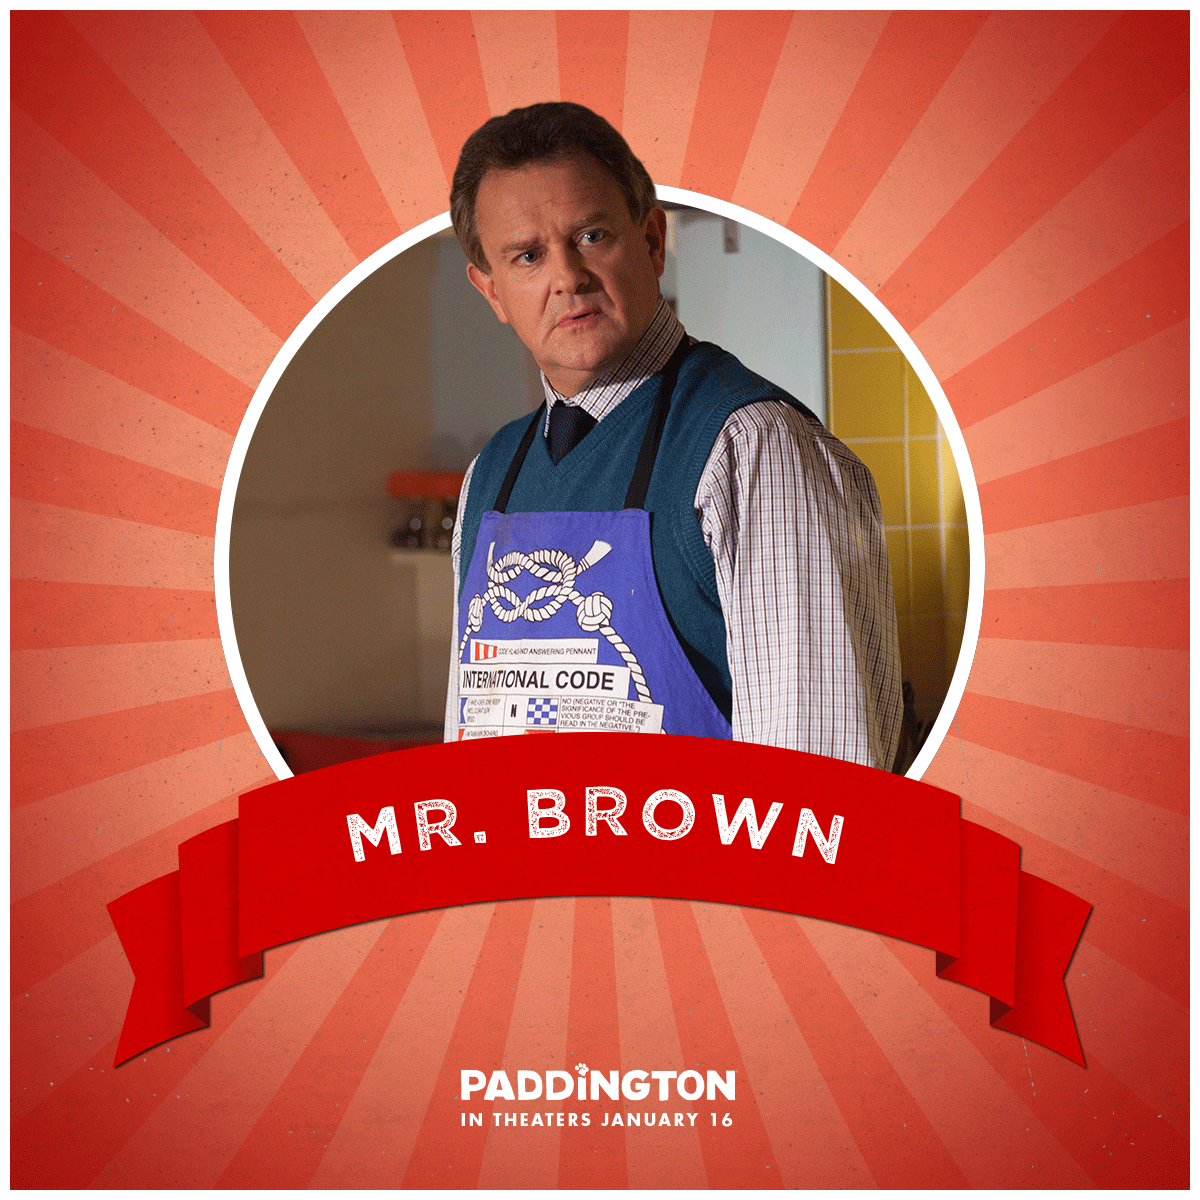 Meet Mr Brown Who Has A Soft Spot For Insurance Safety And